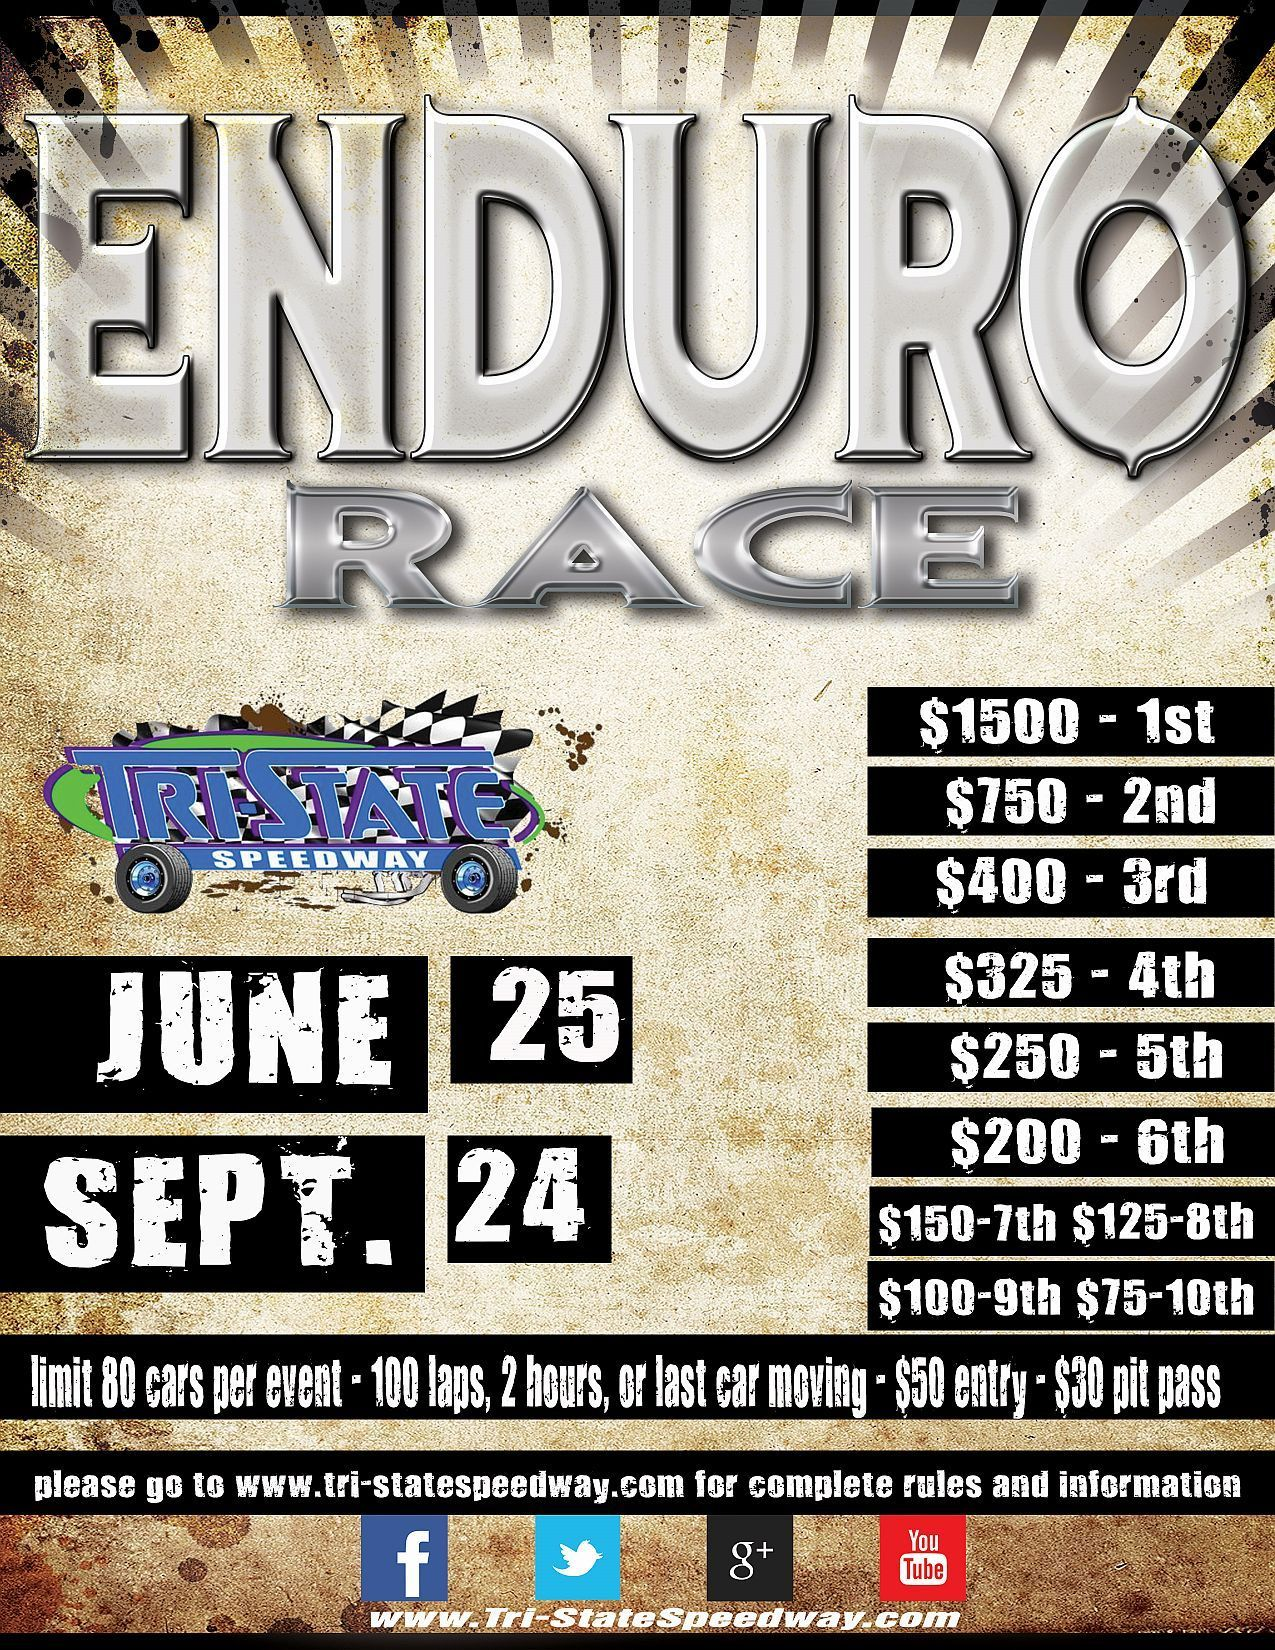 $1,500 to Win Enduro #1 - MOVED to June 25th